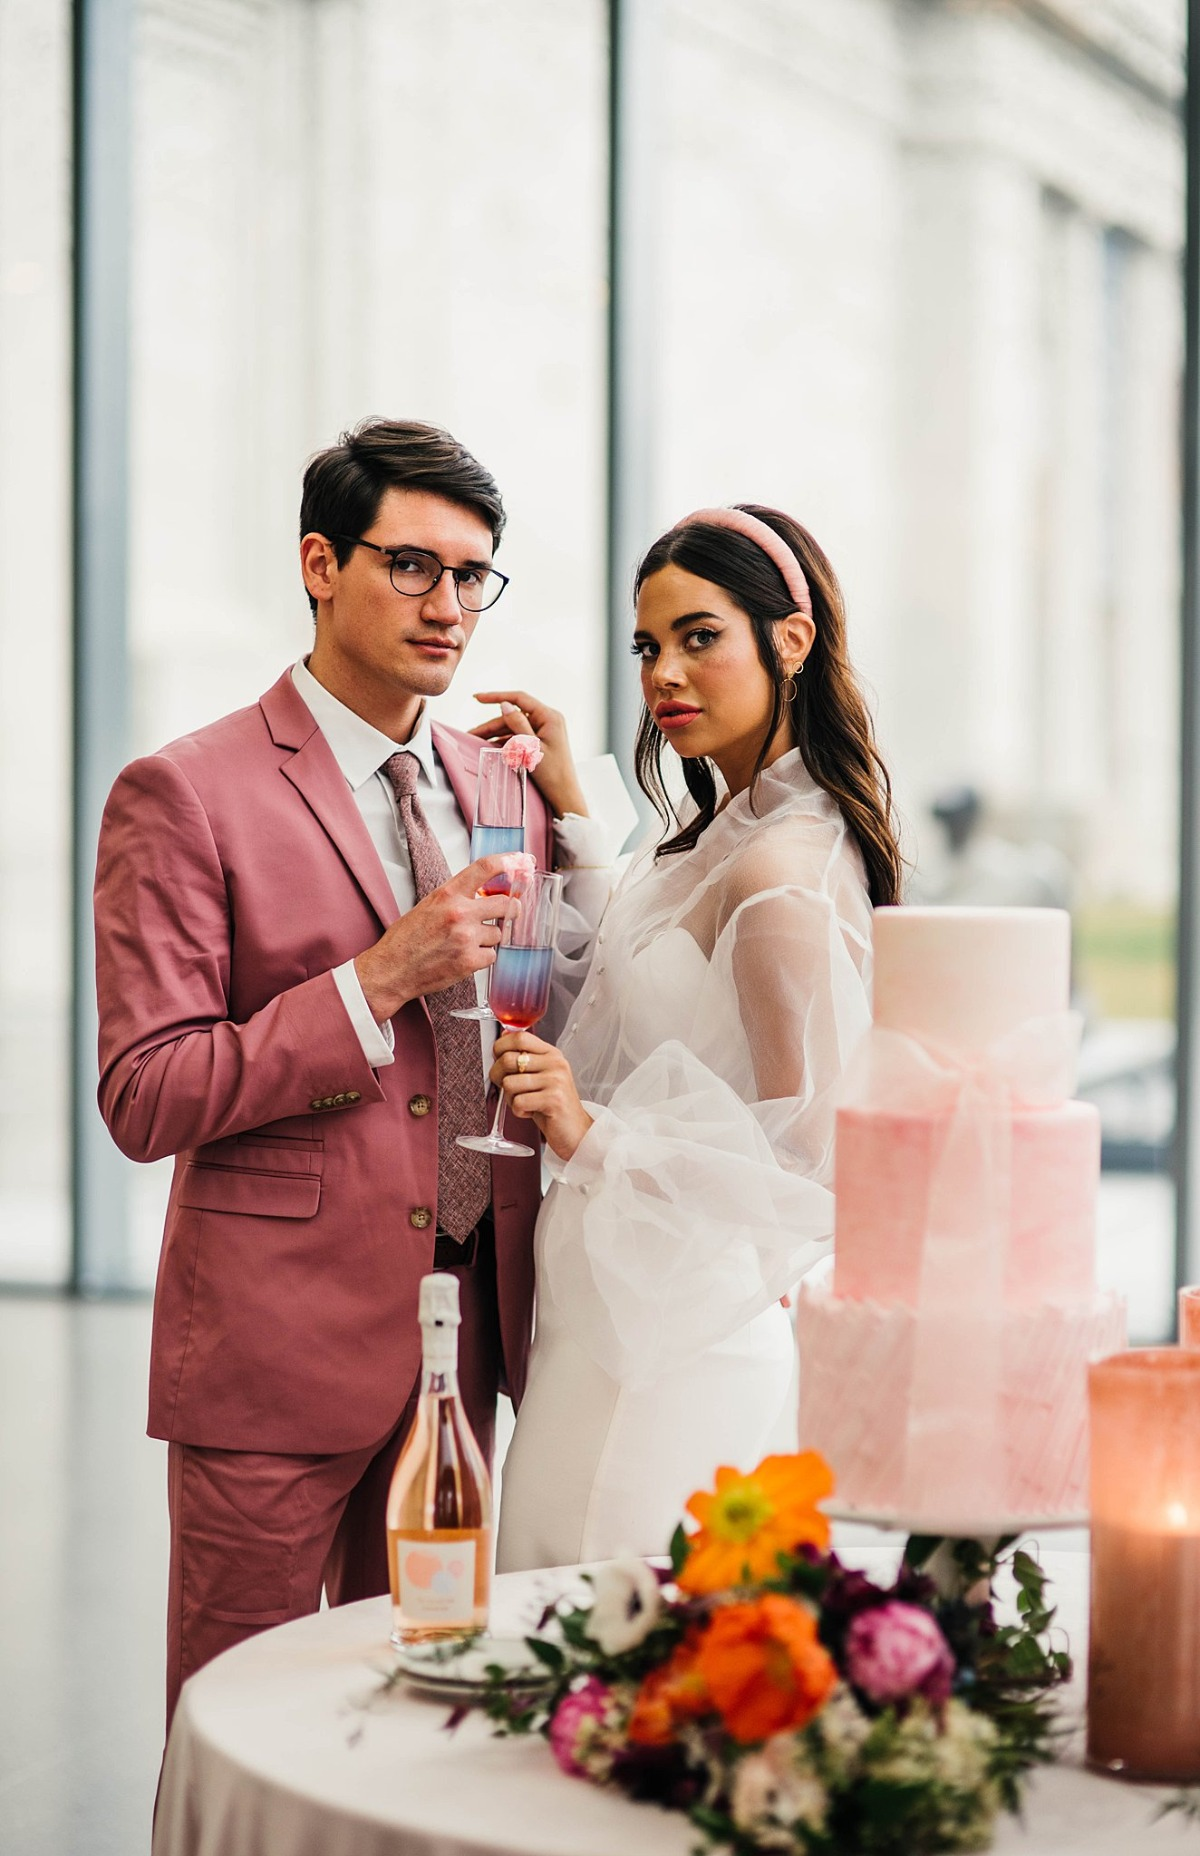 retro wedding inspiration photographed by Love Hunters